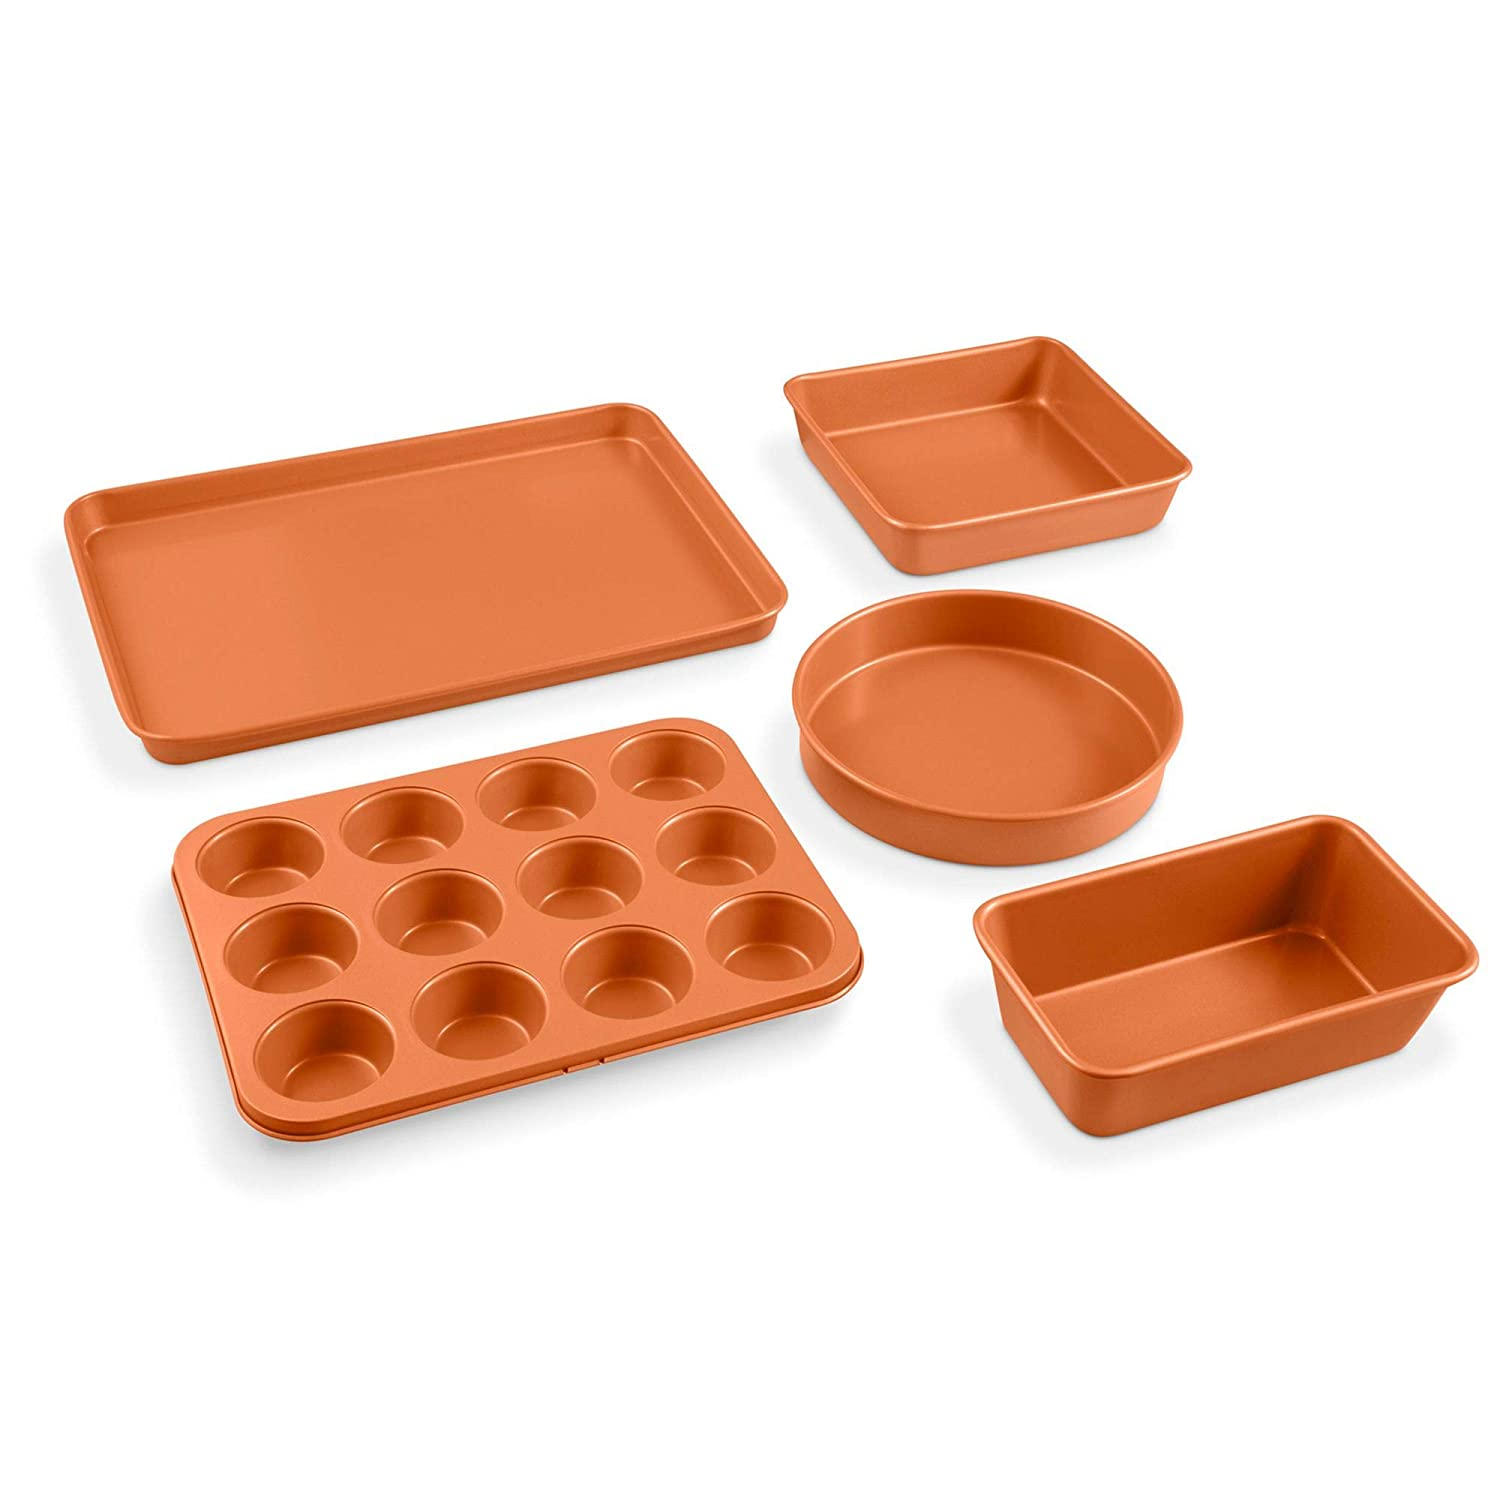 Gotham Steel 5 Piece Copper Bakeware Set with Nonstick Ti-Cerama Coating, Super Strong 0.8MM Gauge, Includes Cookie Sheet, Muffin Pan, Large Baking Pan, Loaf Pan and Round Baking Pan 1508